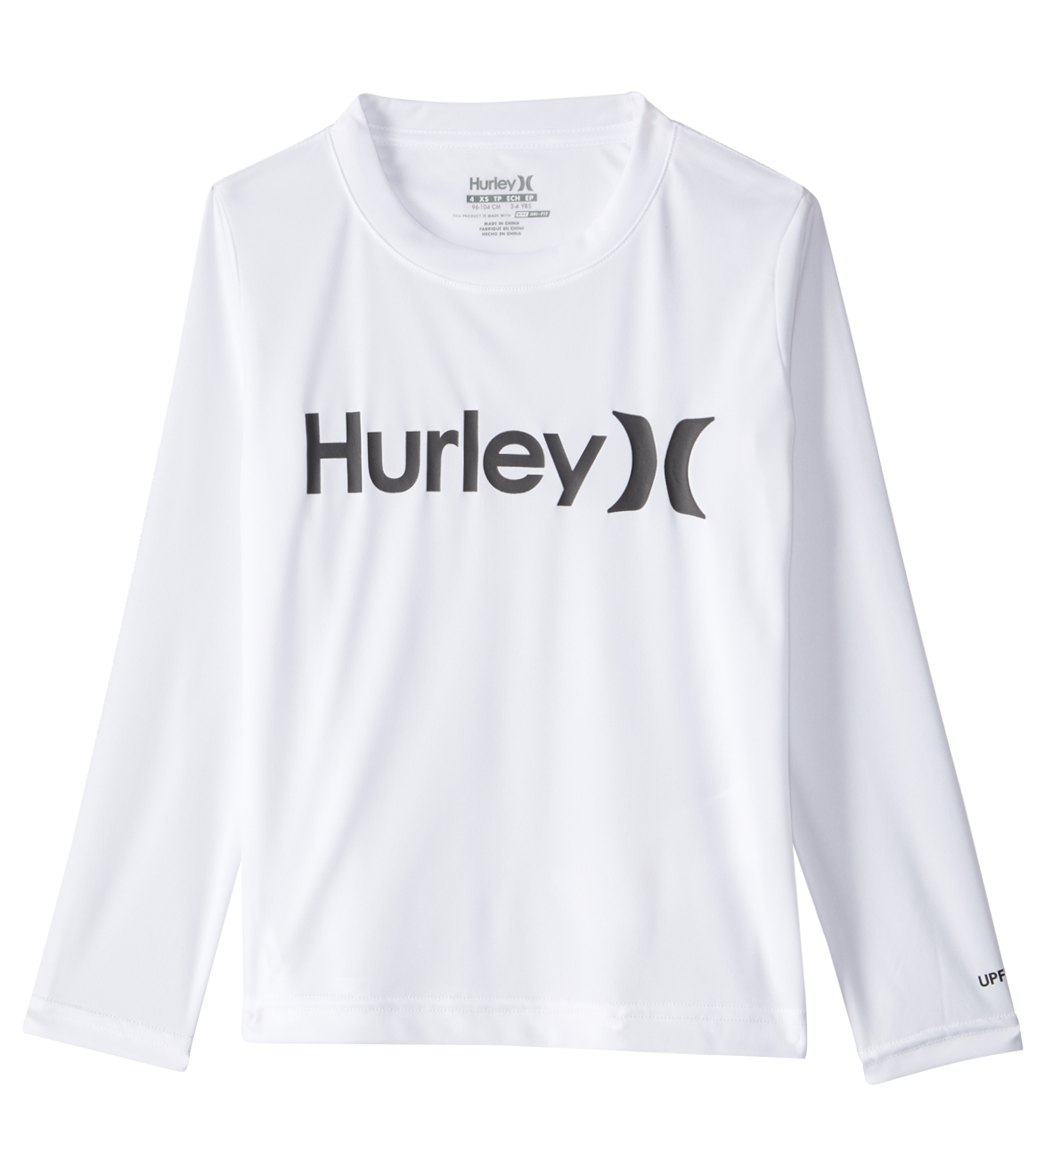 1e33931f2 Hurley Boys' One and Only Sun Protection Long Sleeve Tee (4-7) at ...